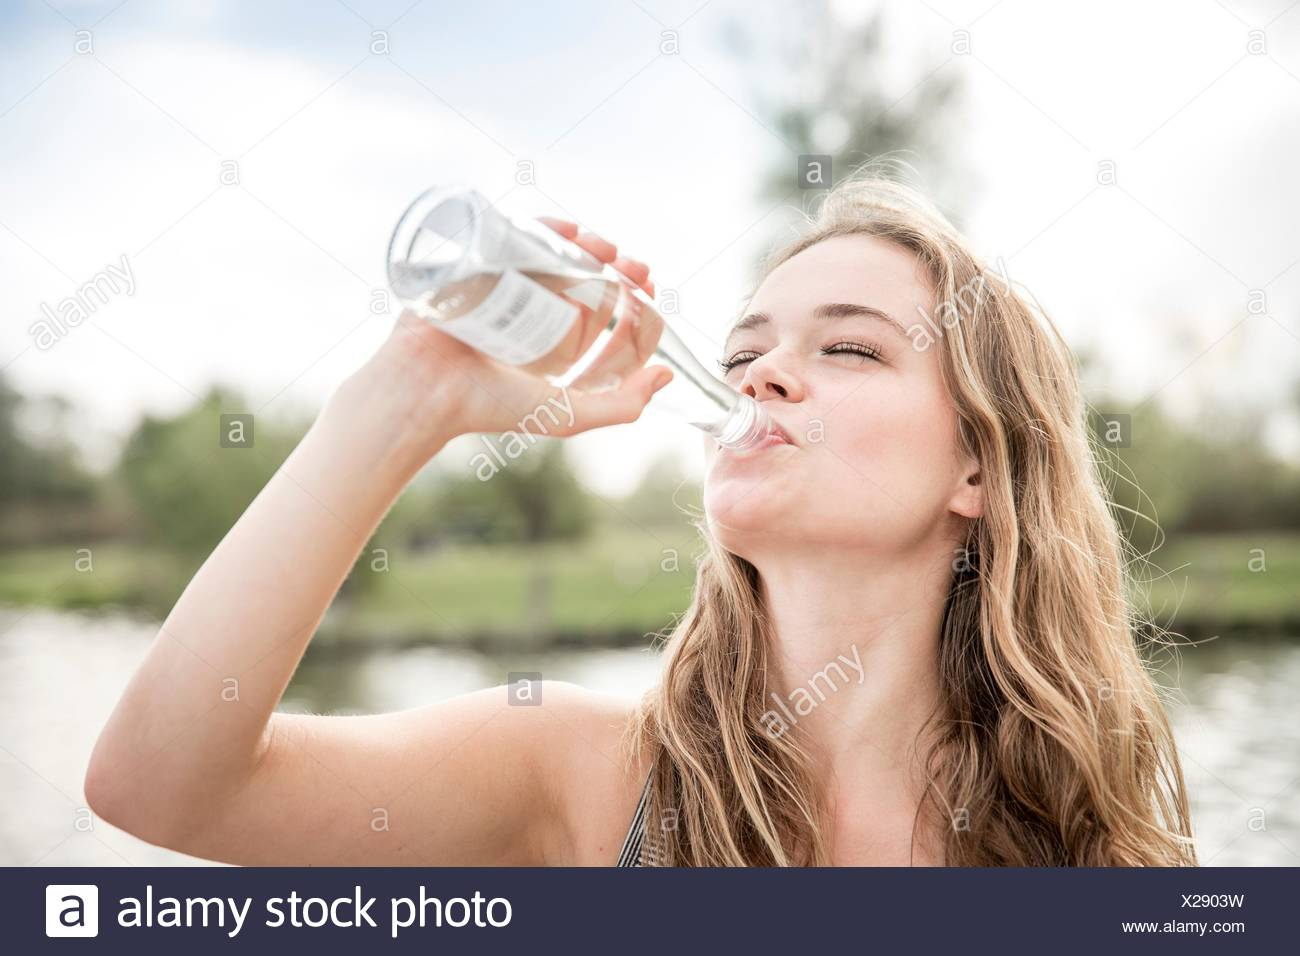 Young woman drinking water from bottle, outdoors - Stock Image